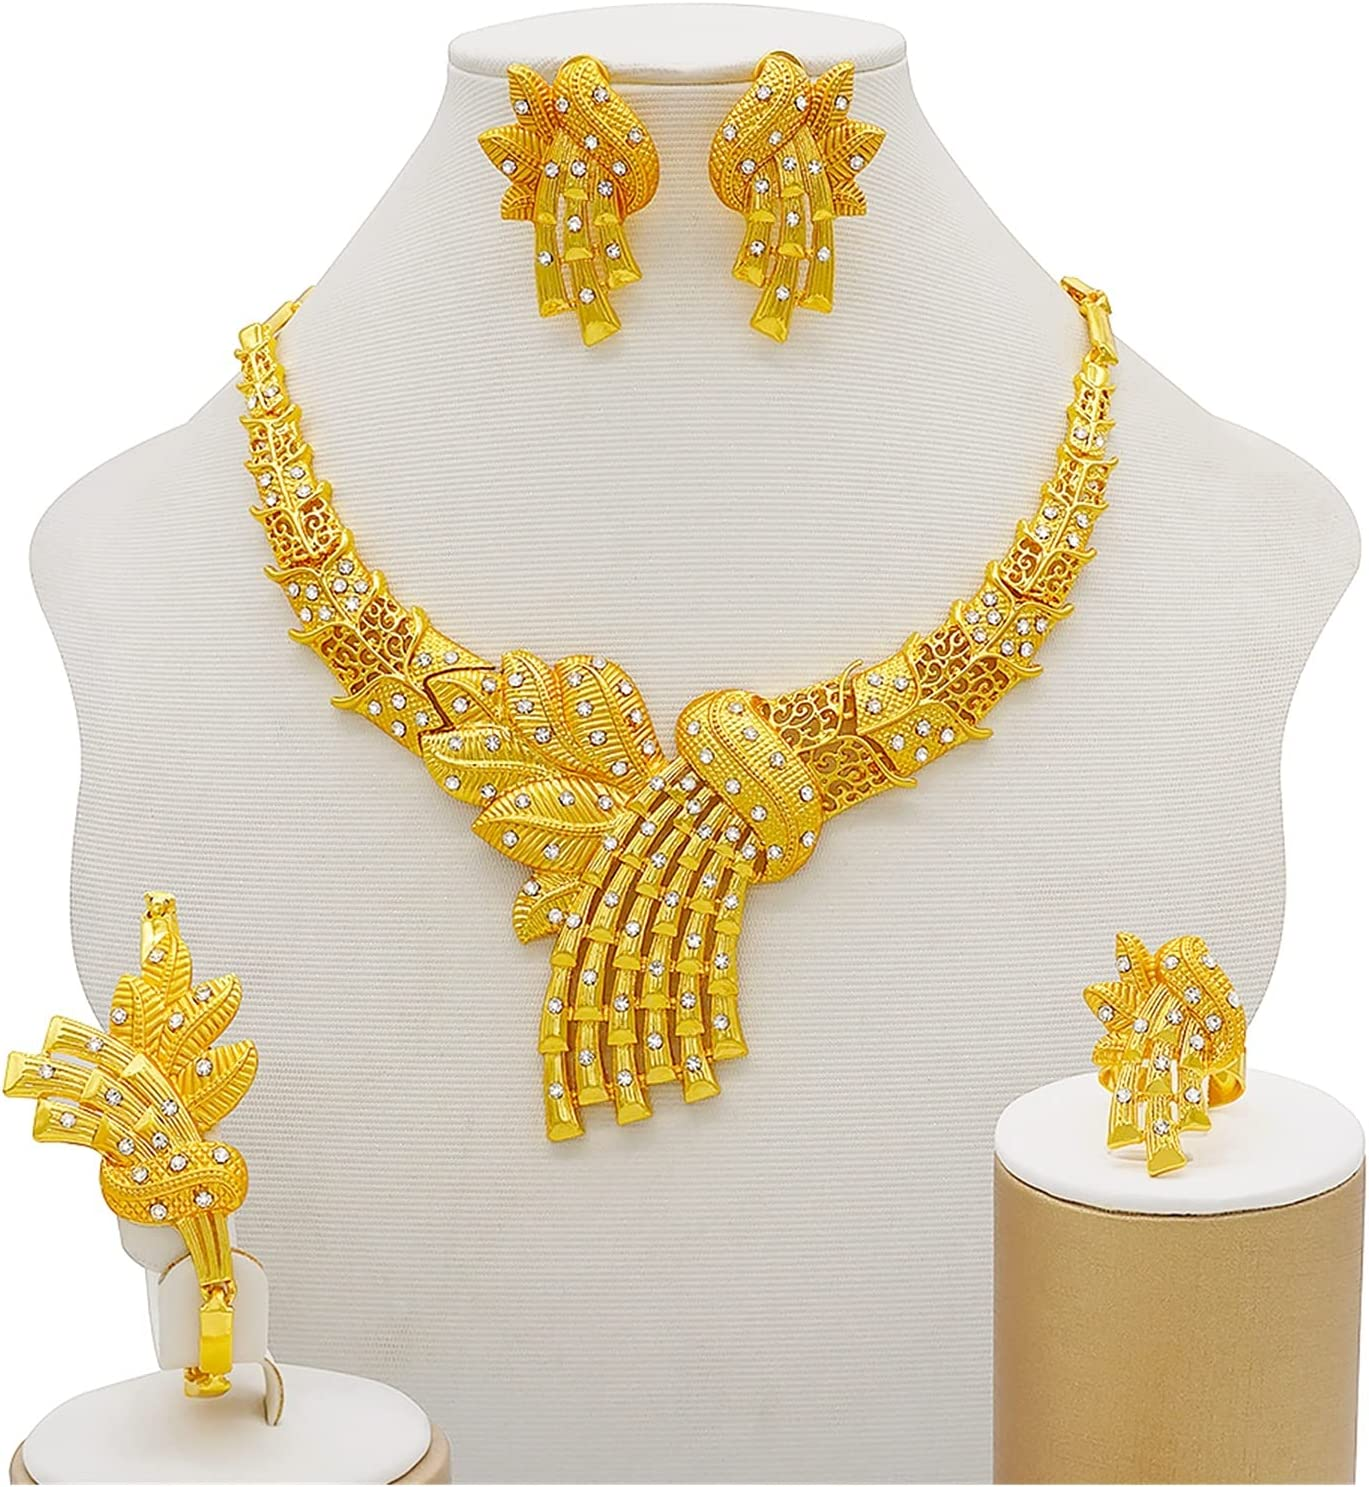 LCKJ Gold Jewelry Sets Women Necklace Earrings Dubai African Indian Bridal Accessory Flowers Jewelry Sets Necklace (Metal Color : Bj814)